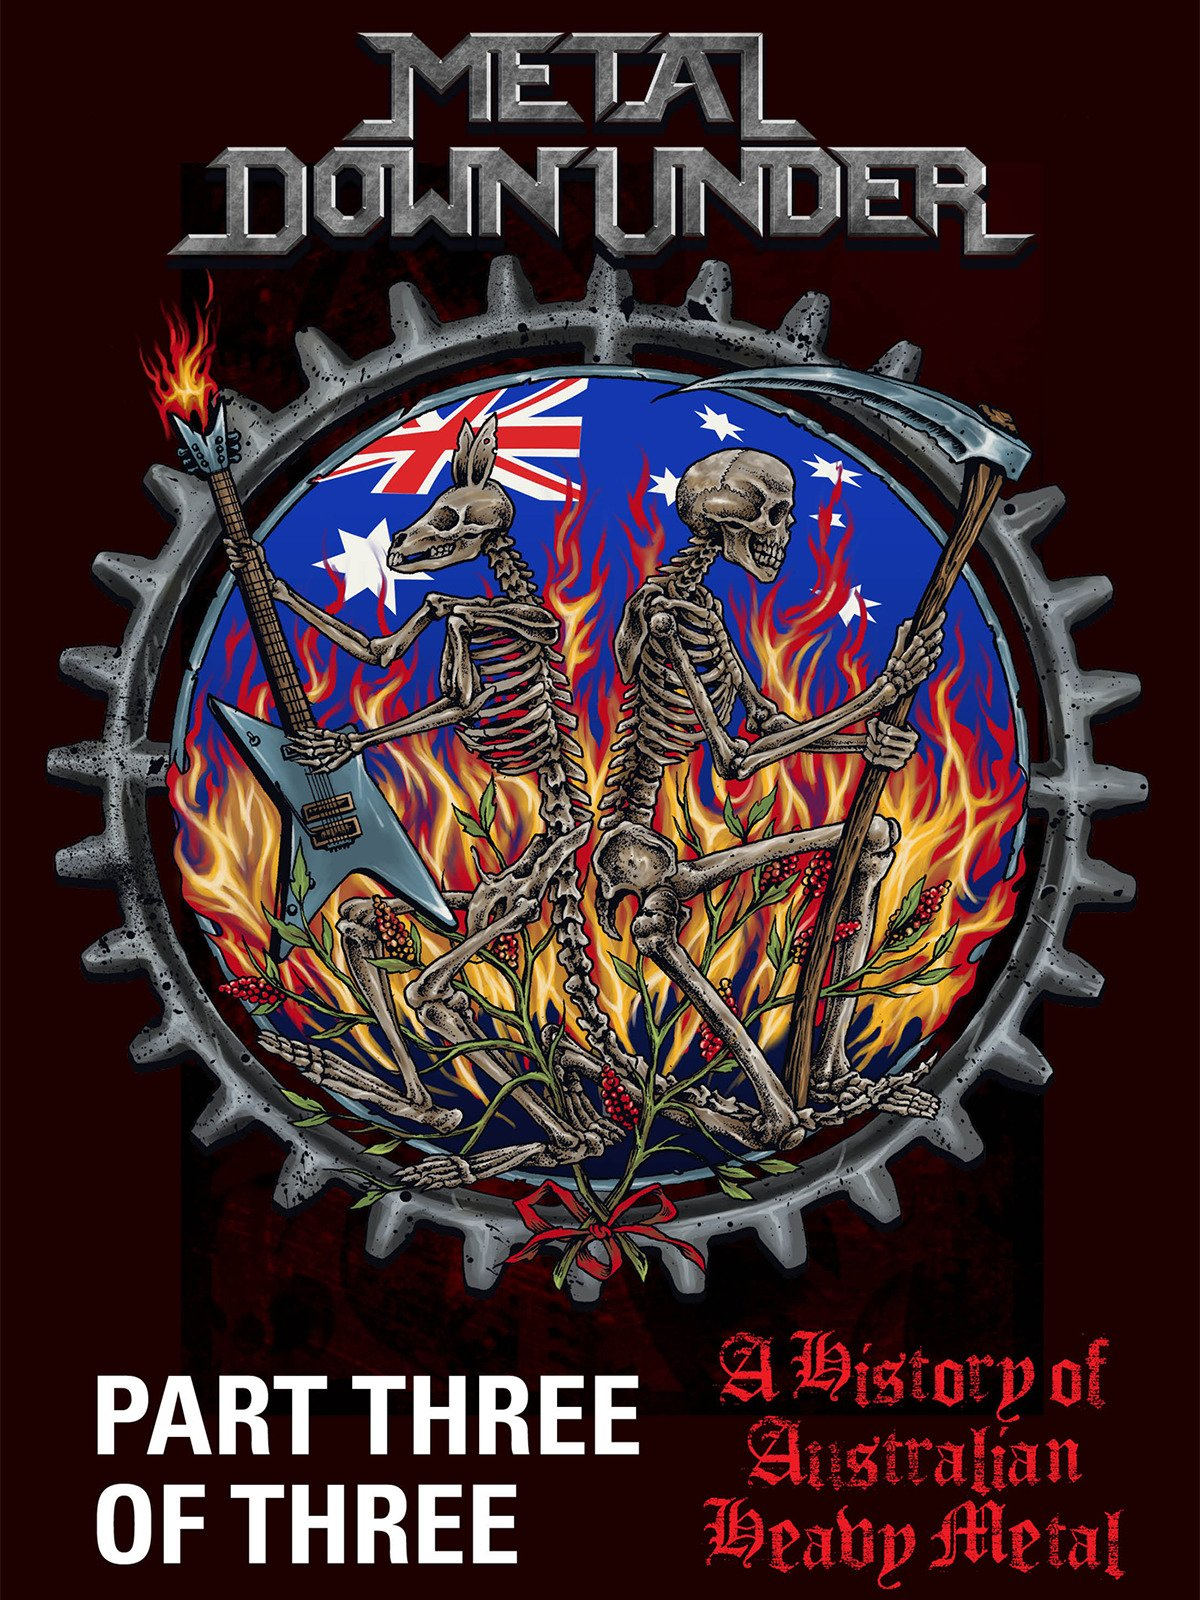 Metal Downunder (A History of Australian Heavy Metal), Part 3